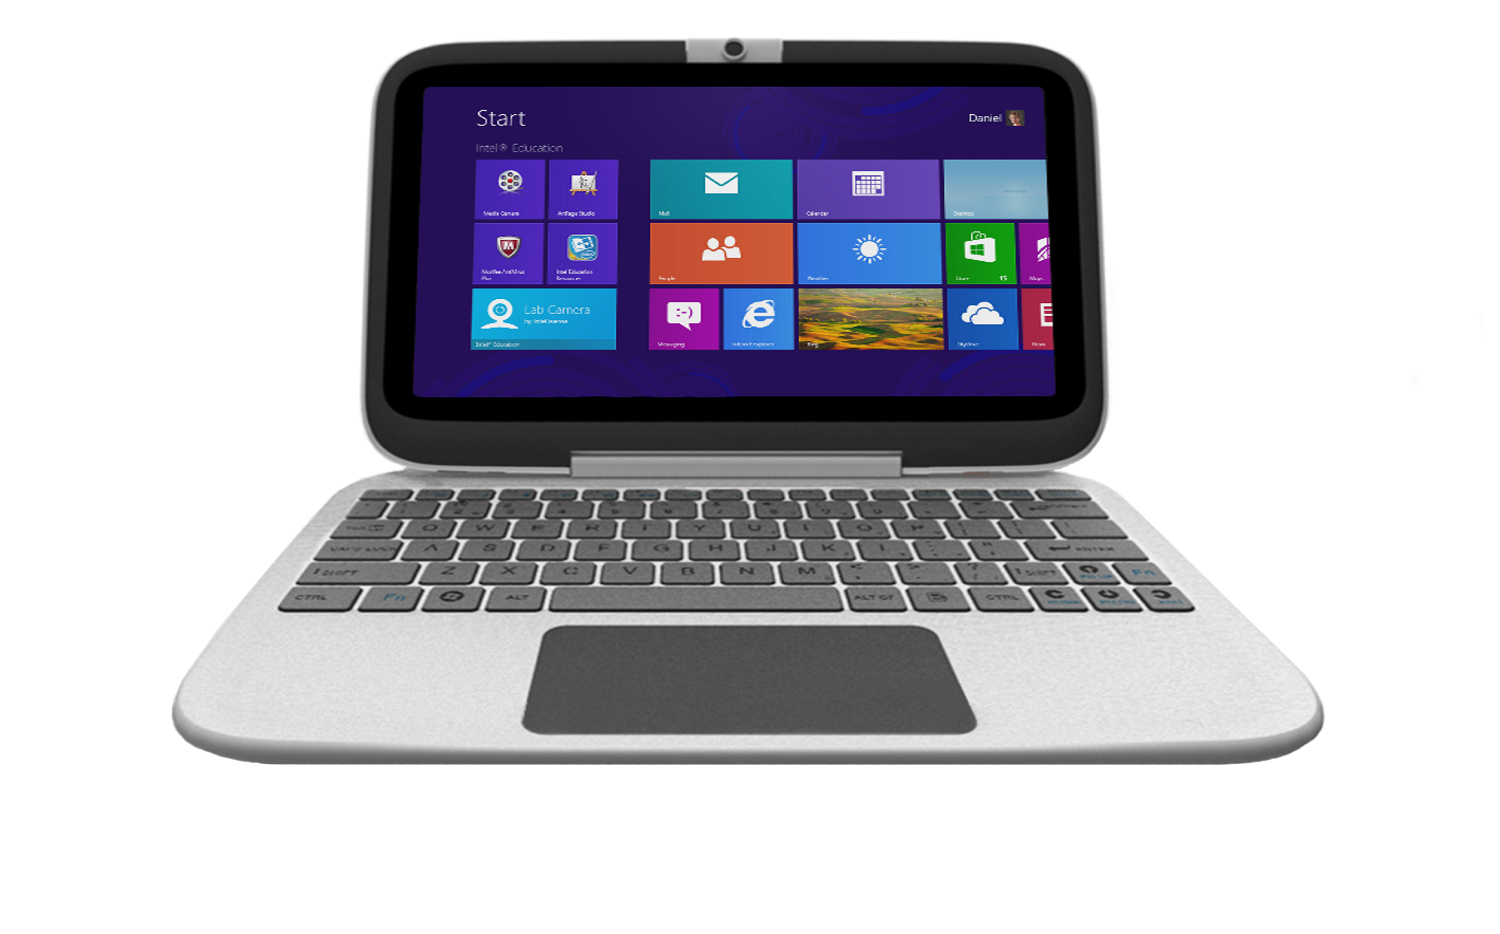 Intel's ruggedized Classmate PC could revolutionize classroom learning.